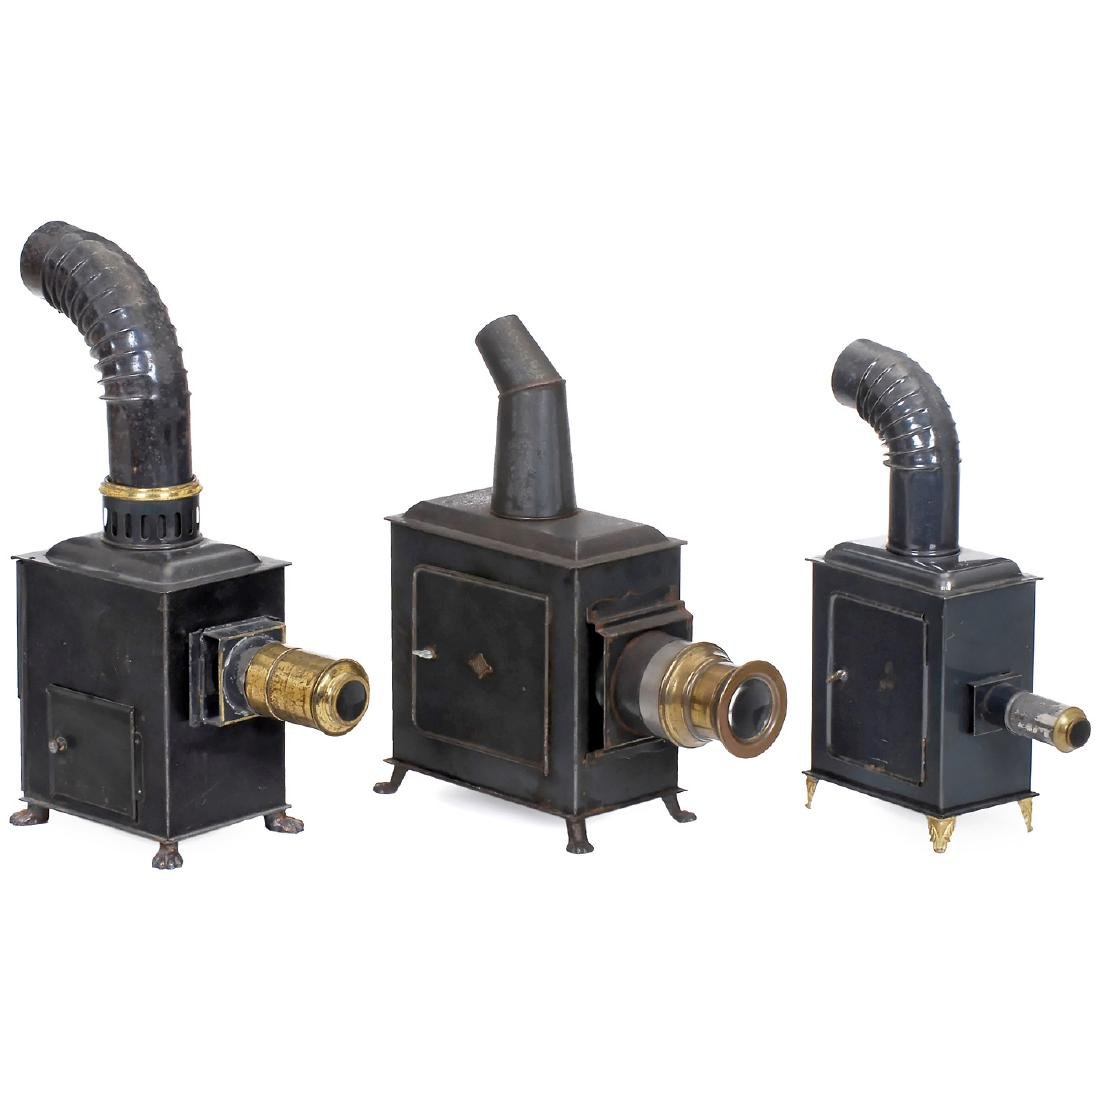 3 Magic Lanterns by Plank, Bing and Carette